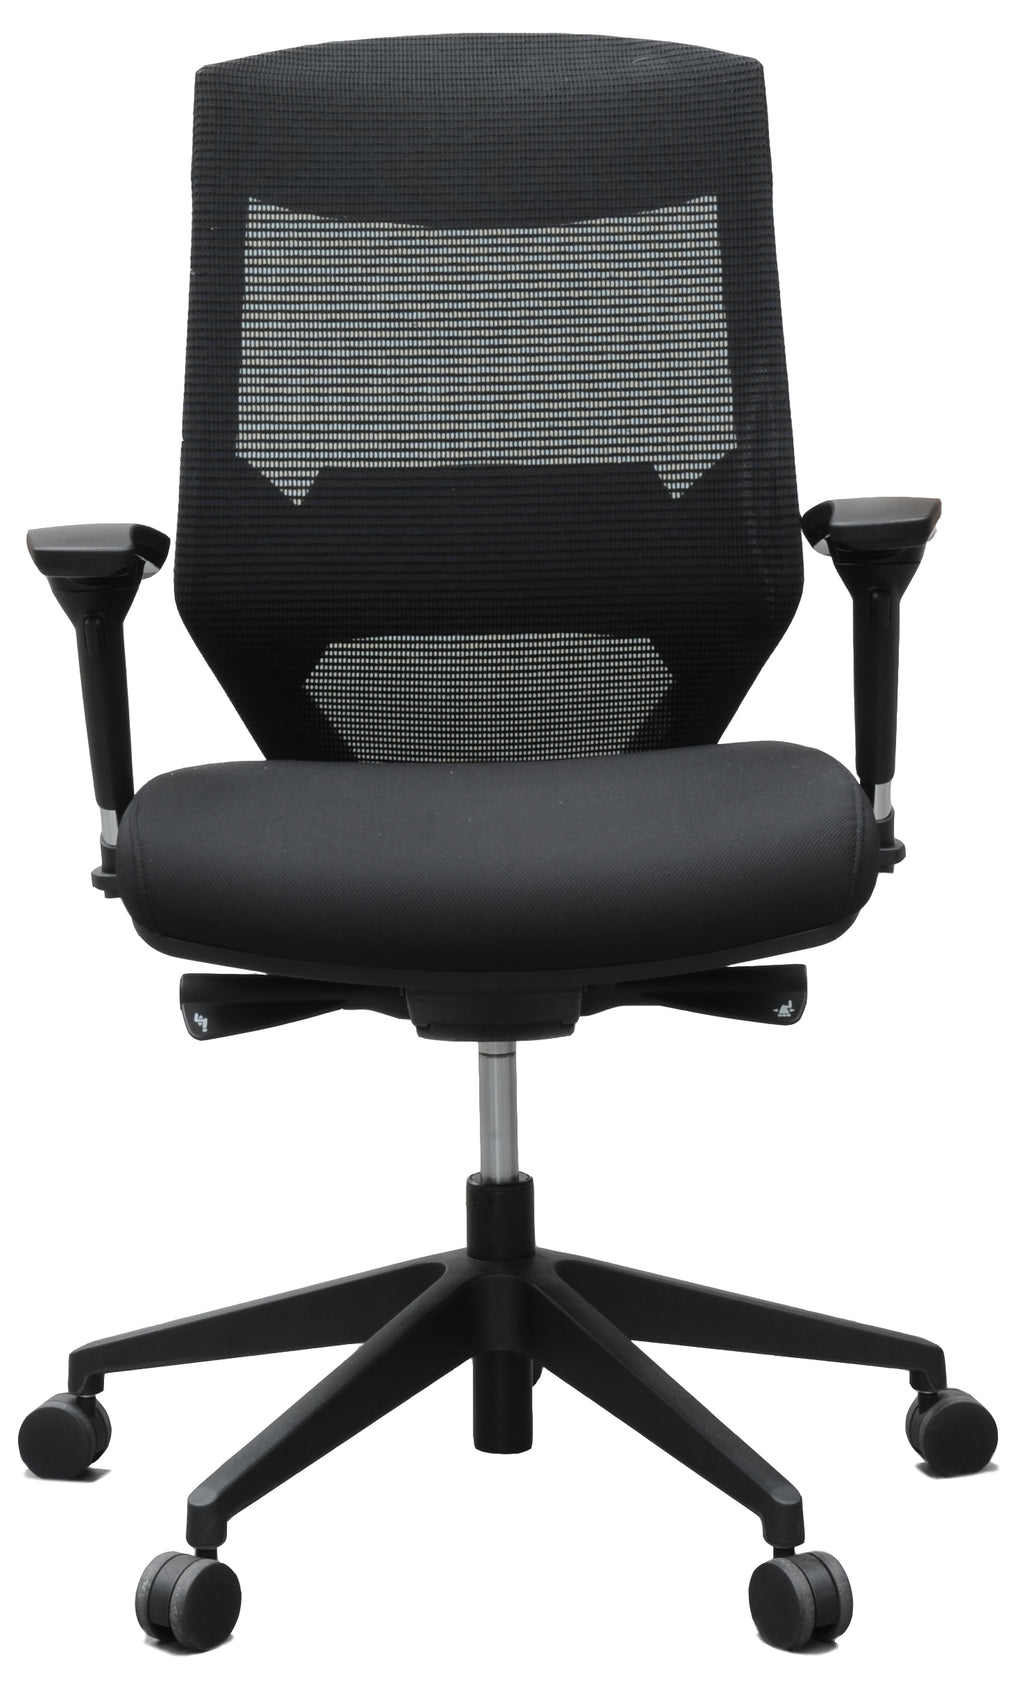 Vogue™ Ergonomic Mesh Back Chair - Medium Back Support - KiPP